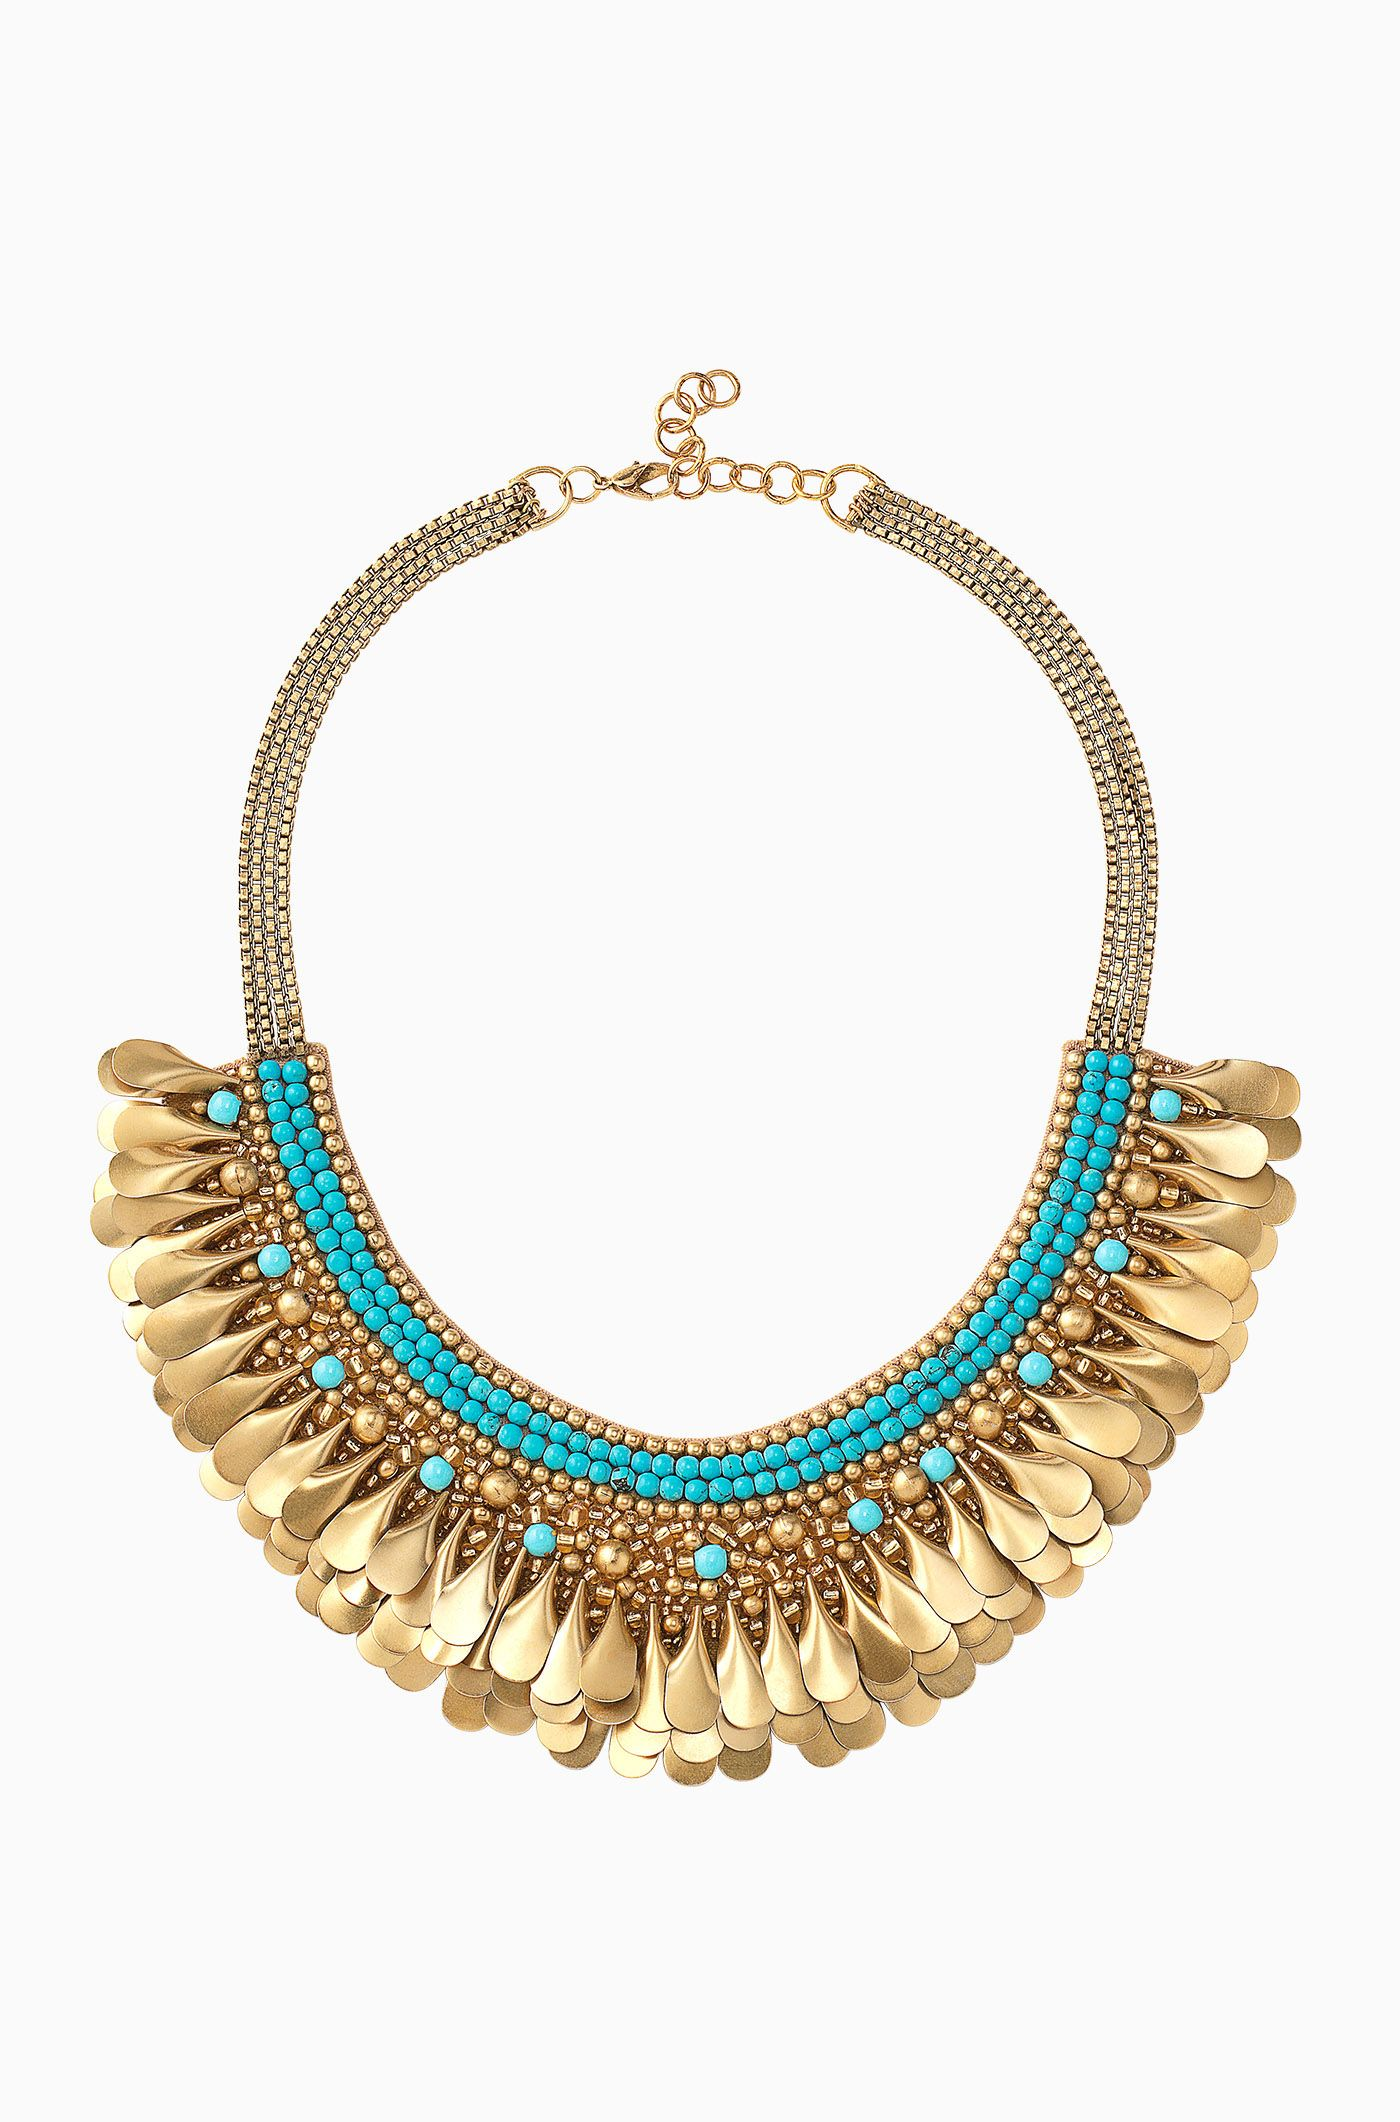 pari statement necklace | shop new summer styles from stella & dot